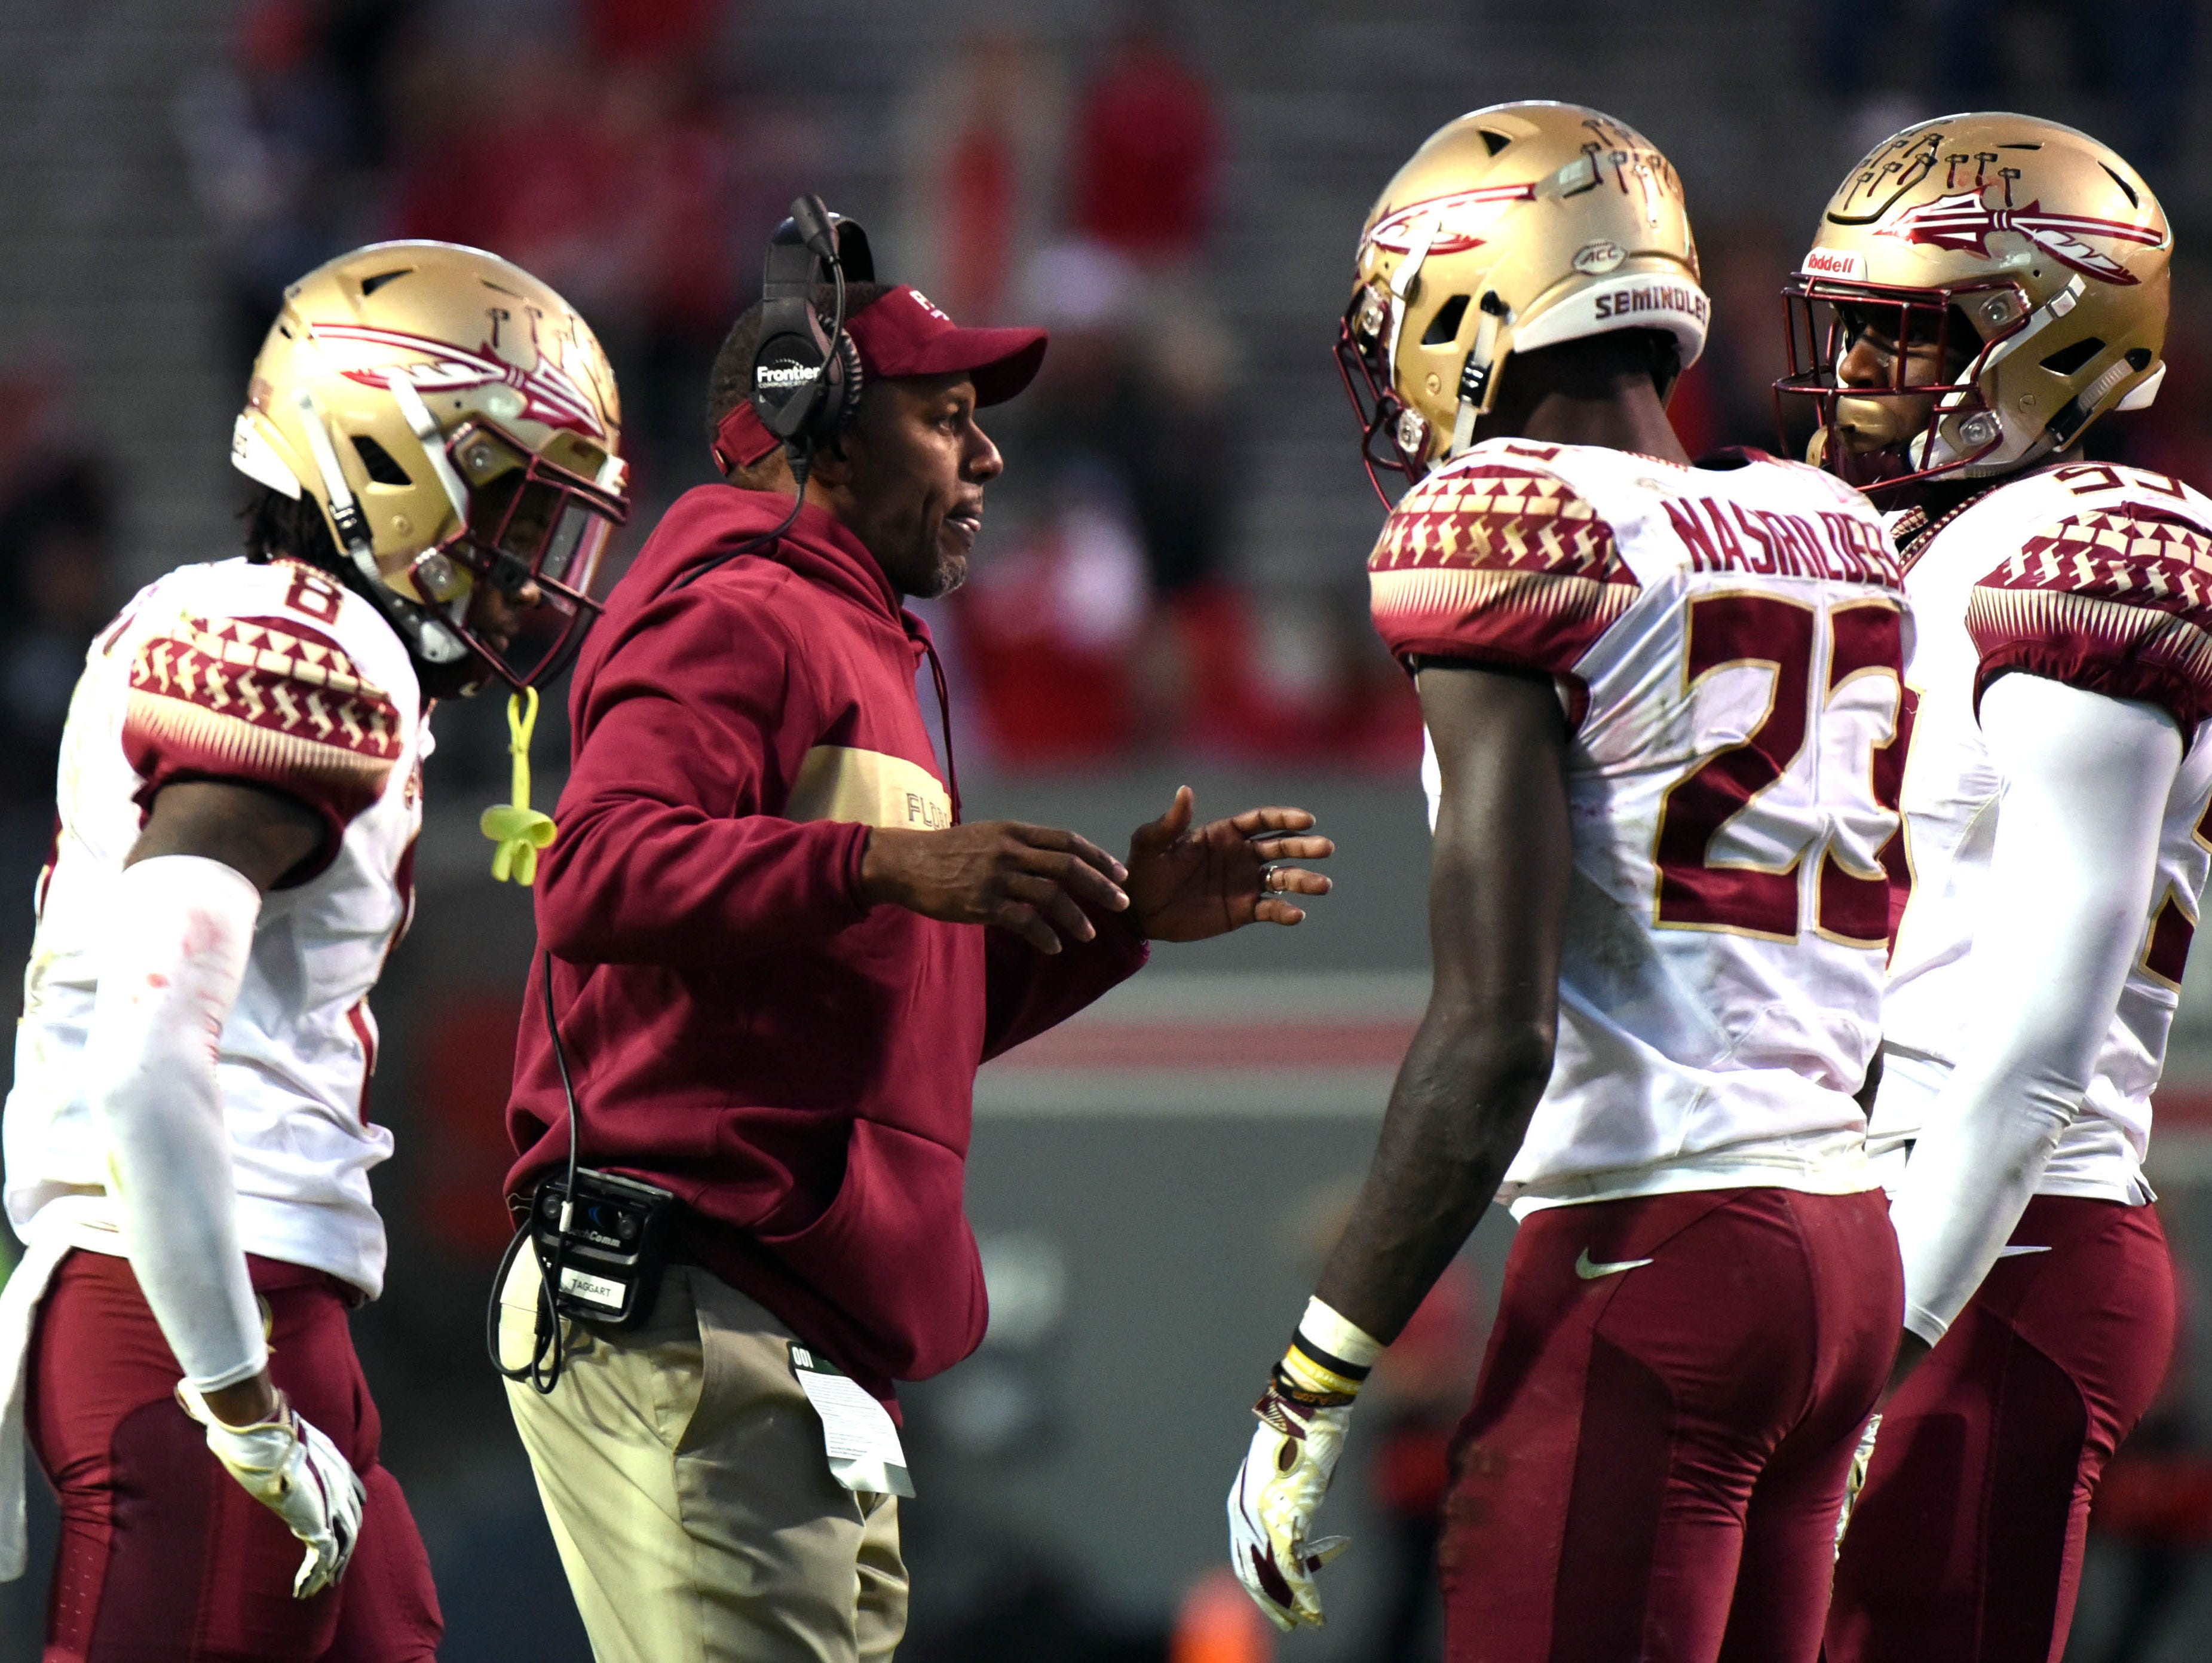 Nov 3, 2018; Raleigh, NC, USA; Florida State Seminoles head coach Willie Taggart (center) talks to his players during the second half against the North Carolina State Wolfpack at Carter-Finley Stadium.  The Wolfpack won 47-28.  Mandatory Credit: Rob Kinnan-USA TODAY Sports